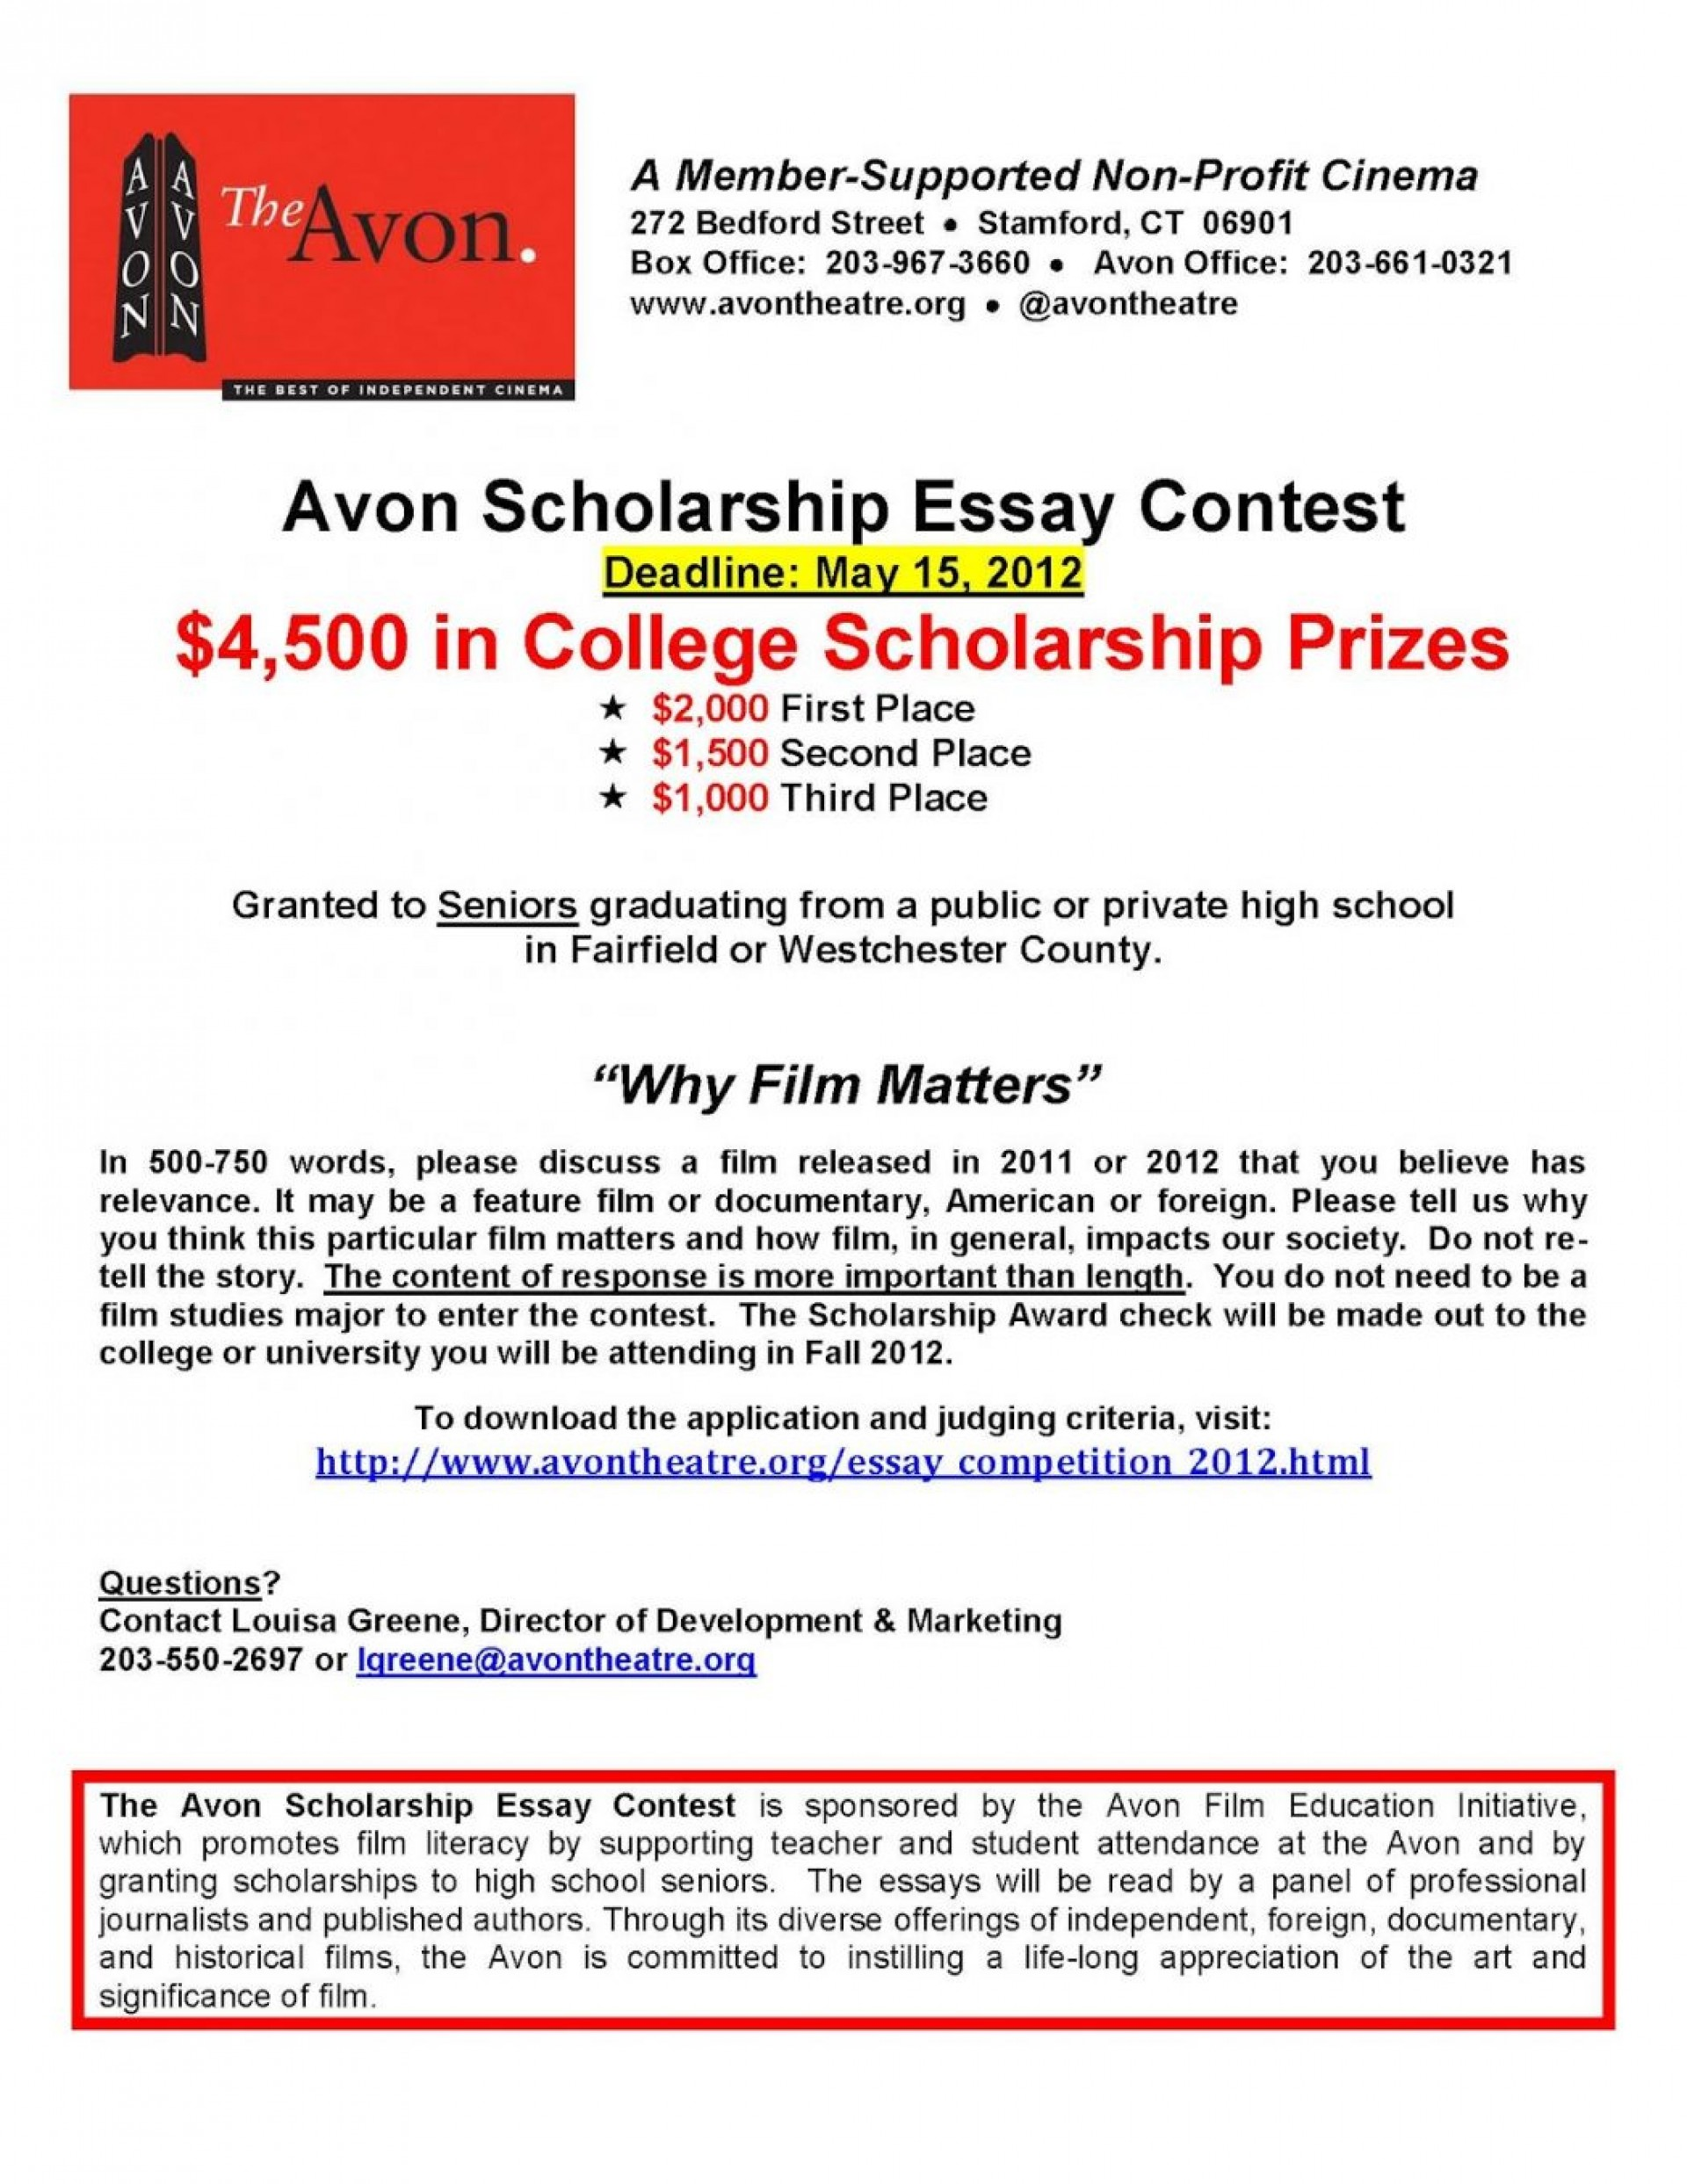 004 No Essay College Scholarship Prowler Avonscholarshipessaycontest2012 Easy Scholarships For High School Students 1048x1357 Awesome Free Required Hispanic 1920